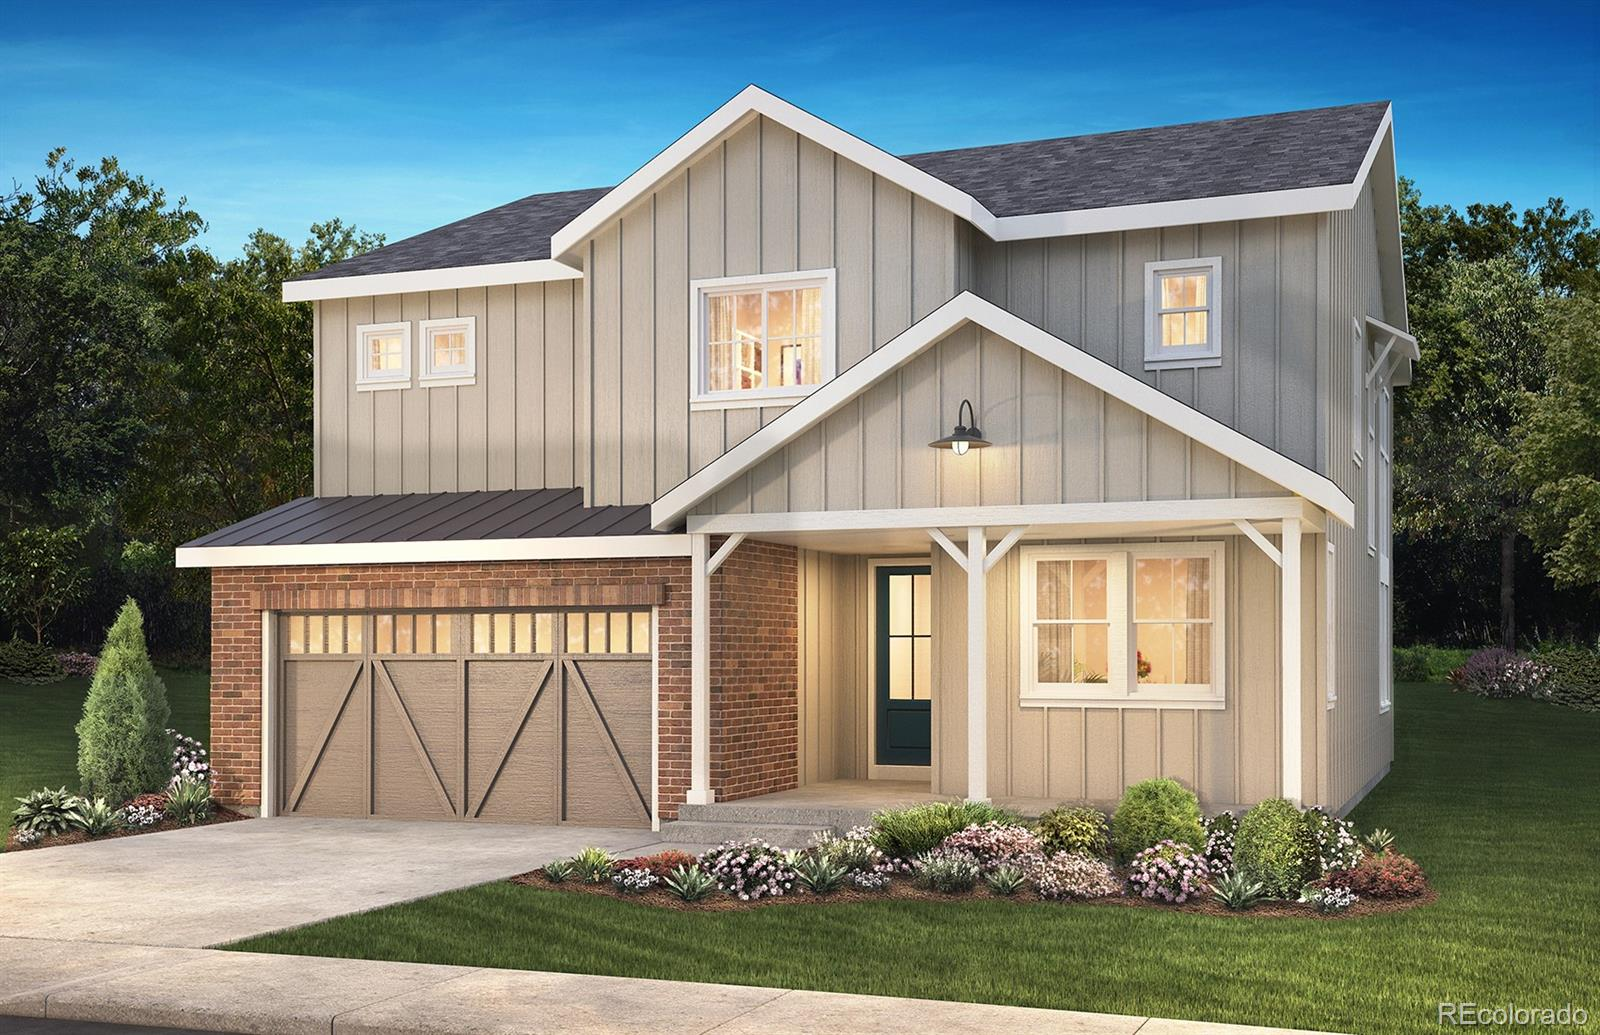 """Available July 2020! This gorgeous Corbett 2 story in The Canyons features 4 beds (3 upper / 1 main), 3 baths, loft, upper laundry, great room, dining area, kitchen, 3 car garage (2 + 1 tandem), unfinished basement and more. Beautiful design finishes and upgrades include 36"""" GE Cafe™ stainless steel gas appliances; Kitchen with island and walk-in pantry, 36"""" GE Cafe stainless gas appliances, Aristokraft: Winstead - Maple Flagstone cabinetry; Barn doors at study and master bath; Fireplace with floor to ceiling tile surround at great room; Craftsman iron stair rails; tile in all wet areas; upper laundry w/utility sink. This beautiful home thoughtfully combines elegance, energy efficiency and luxury. ENERGY STAR Certified Home. Don't miss your opportunity. Welcome Home!"""